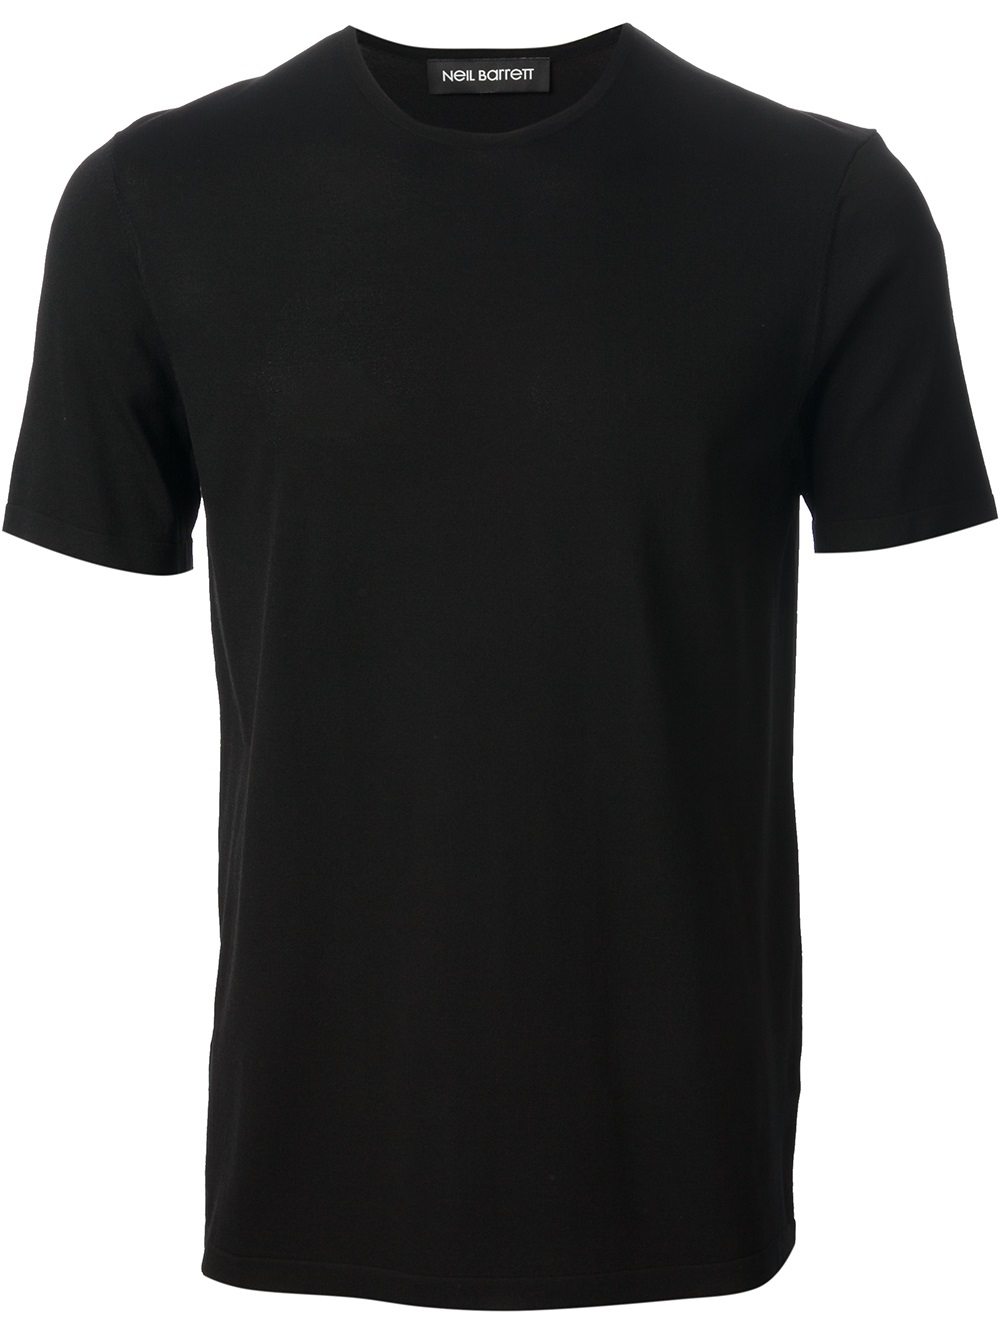 Neil barrett Plain T-Shirt in Black for Men | Lyst